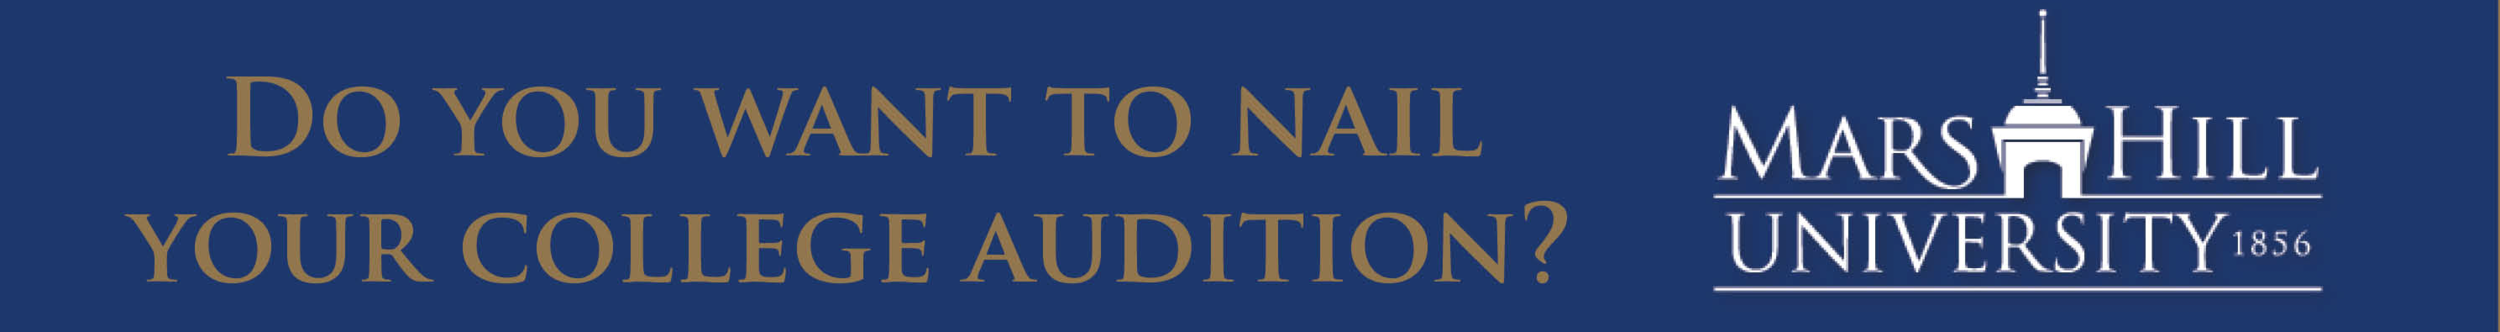 COLLEGE AUDITION WORKSHOP